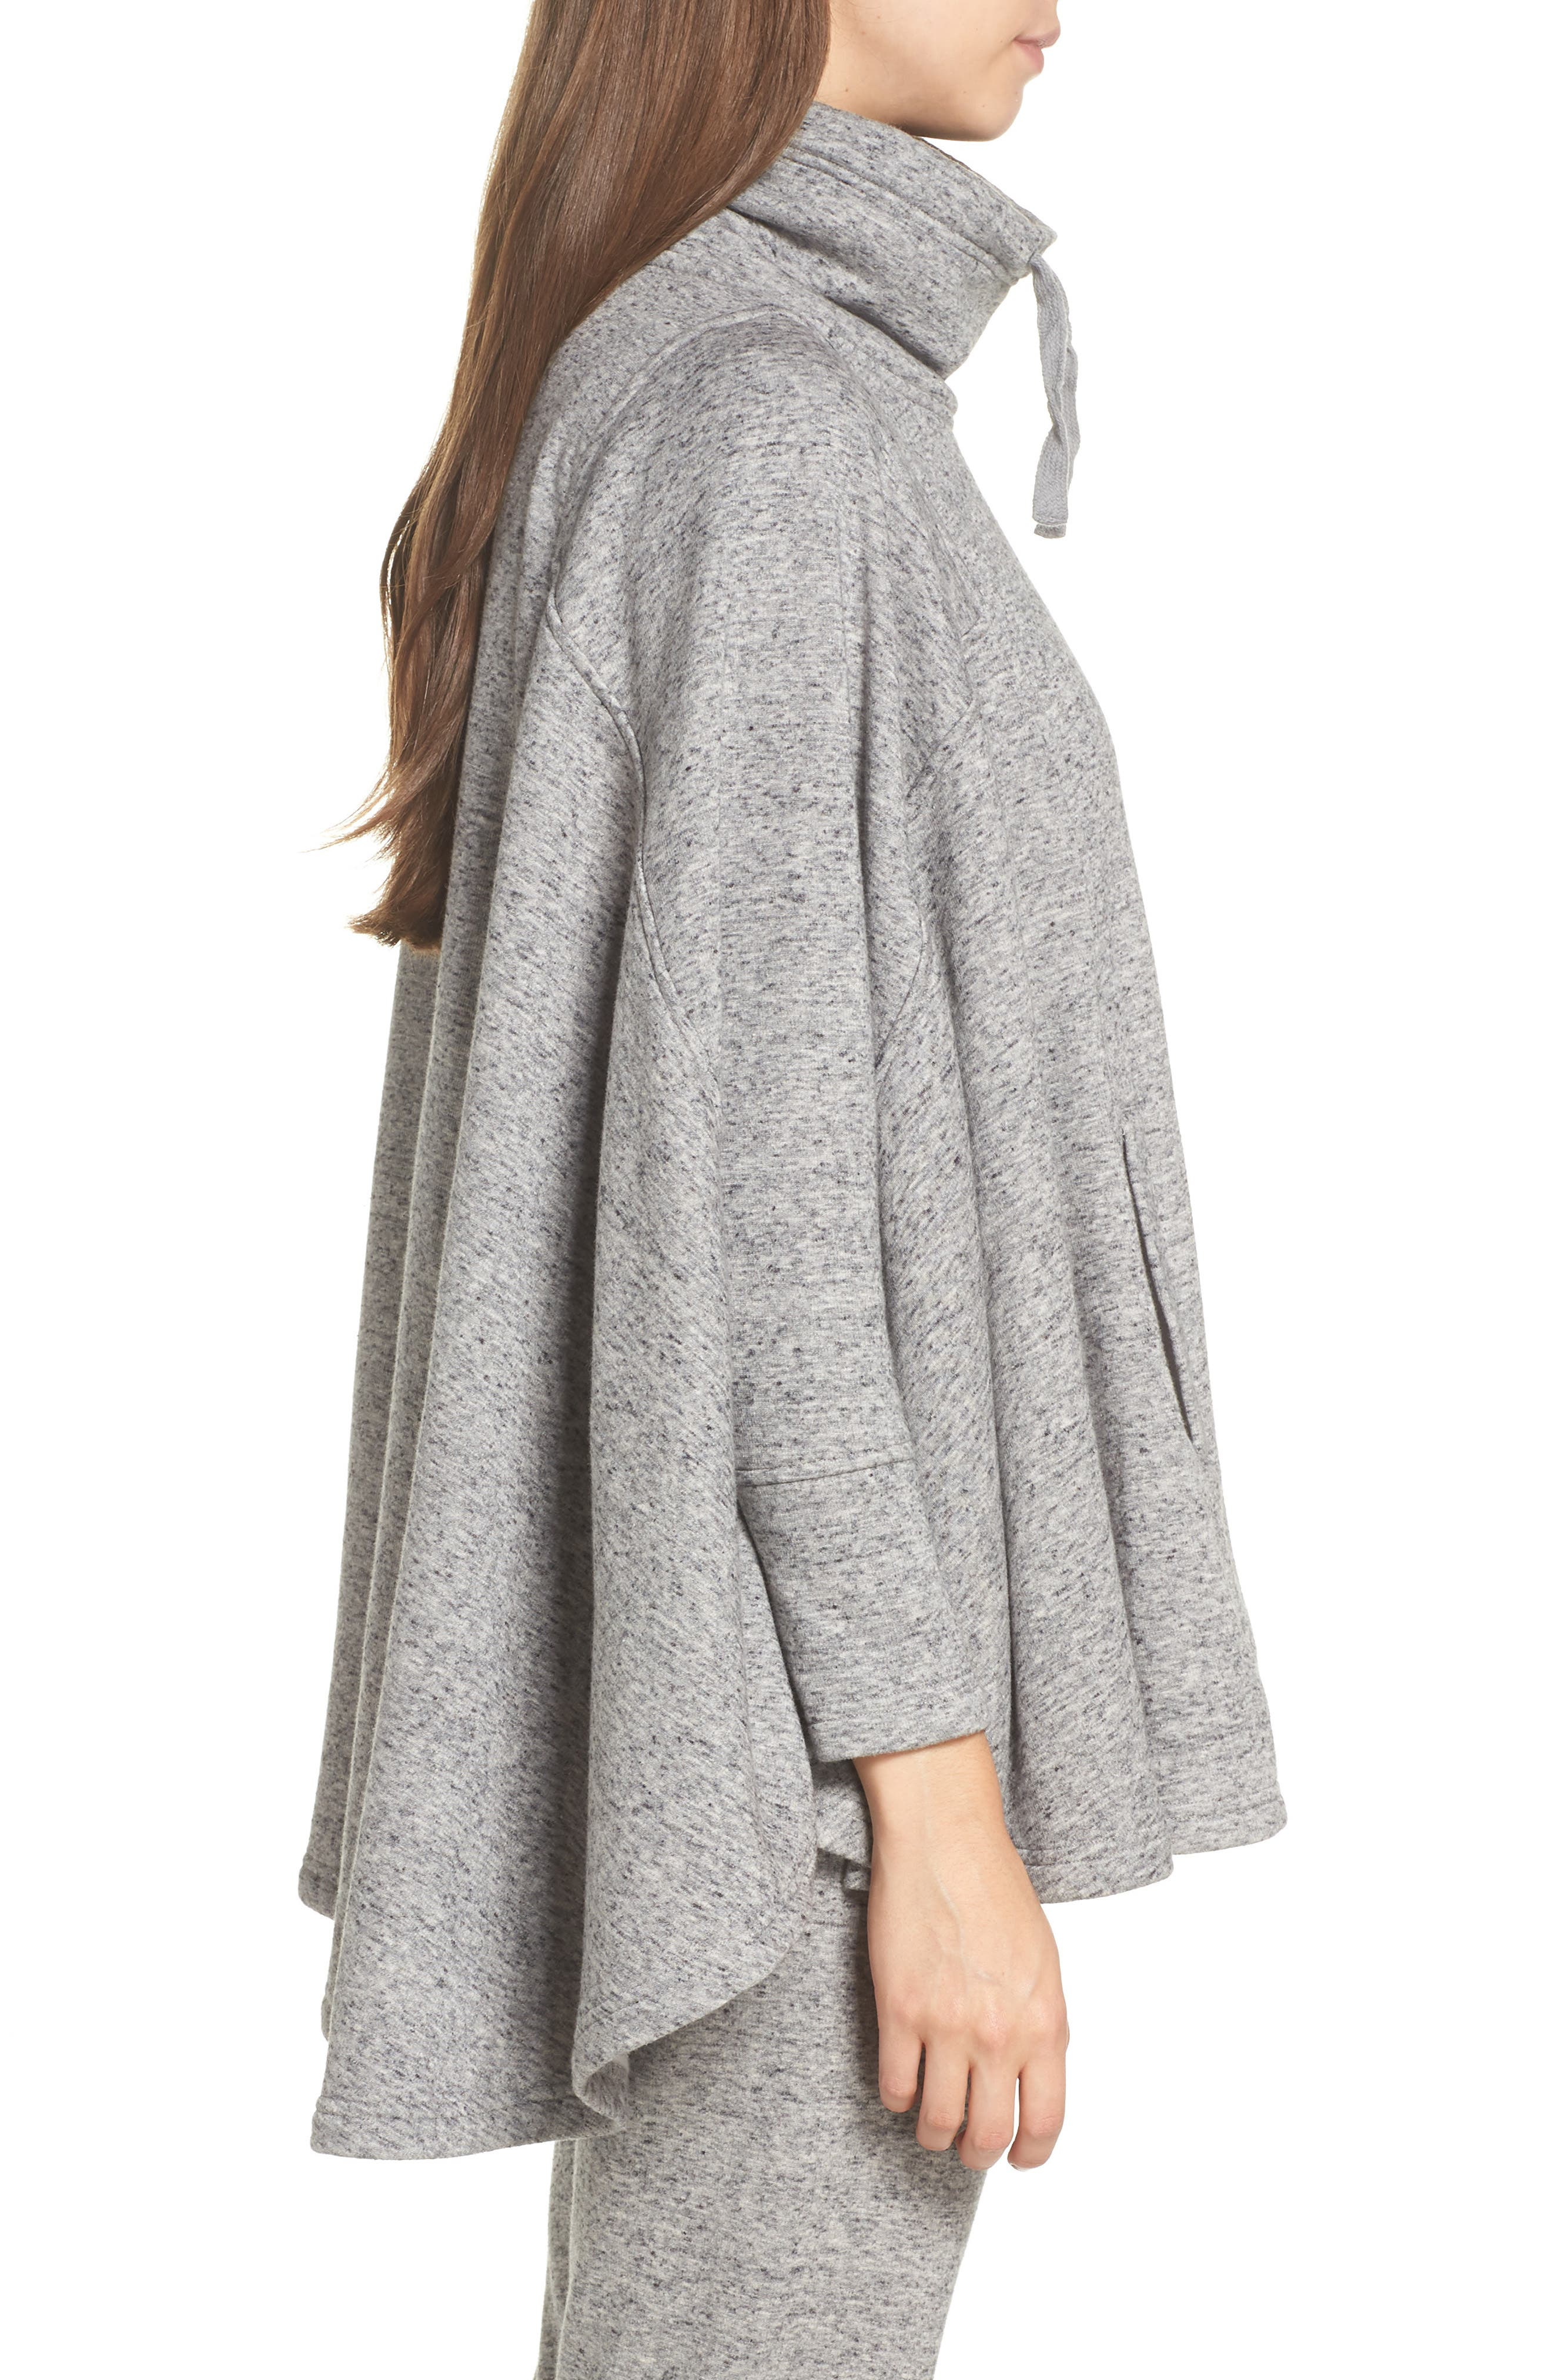 Pichot Turtleneck Poncho,                             Alternate thumbnail 3, color,                             GREY HEATHER